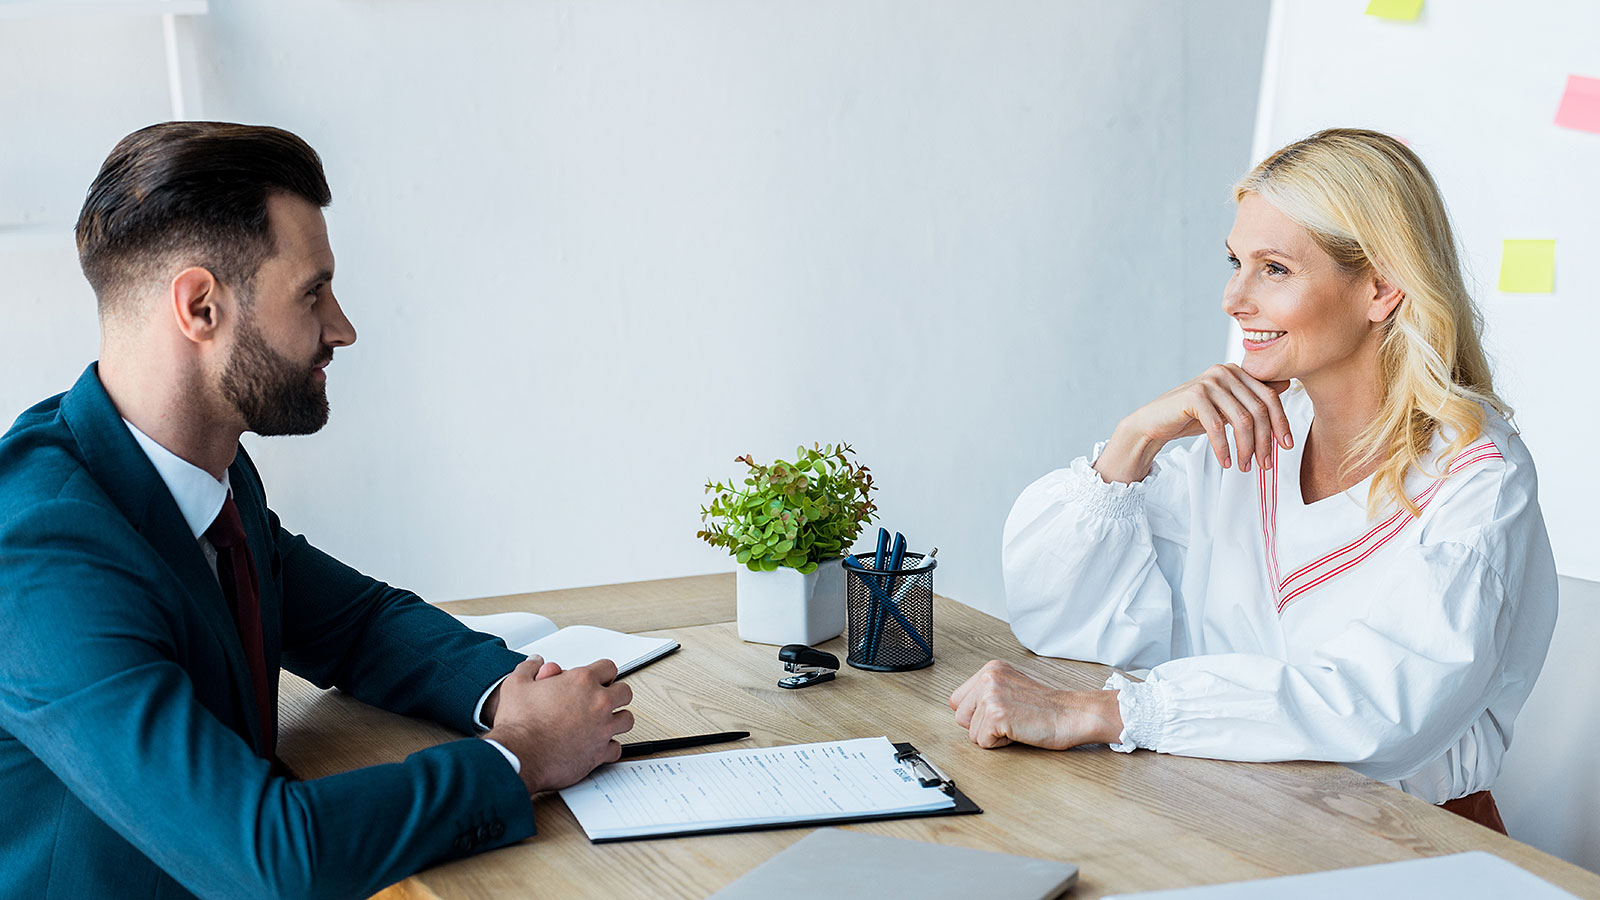 5 ways to keenly answer resume blind-spots during your interview